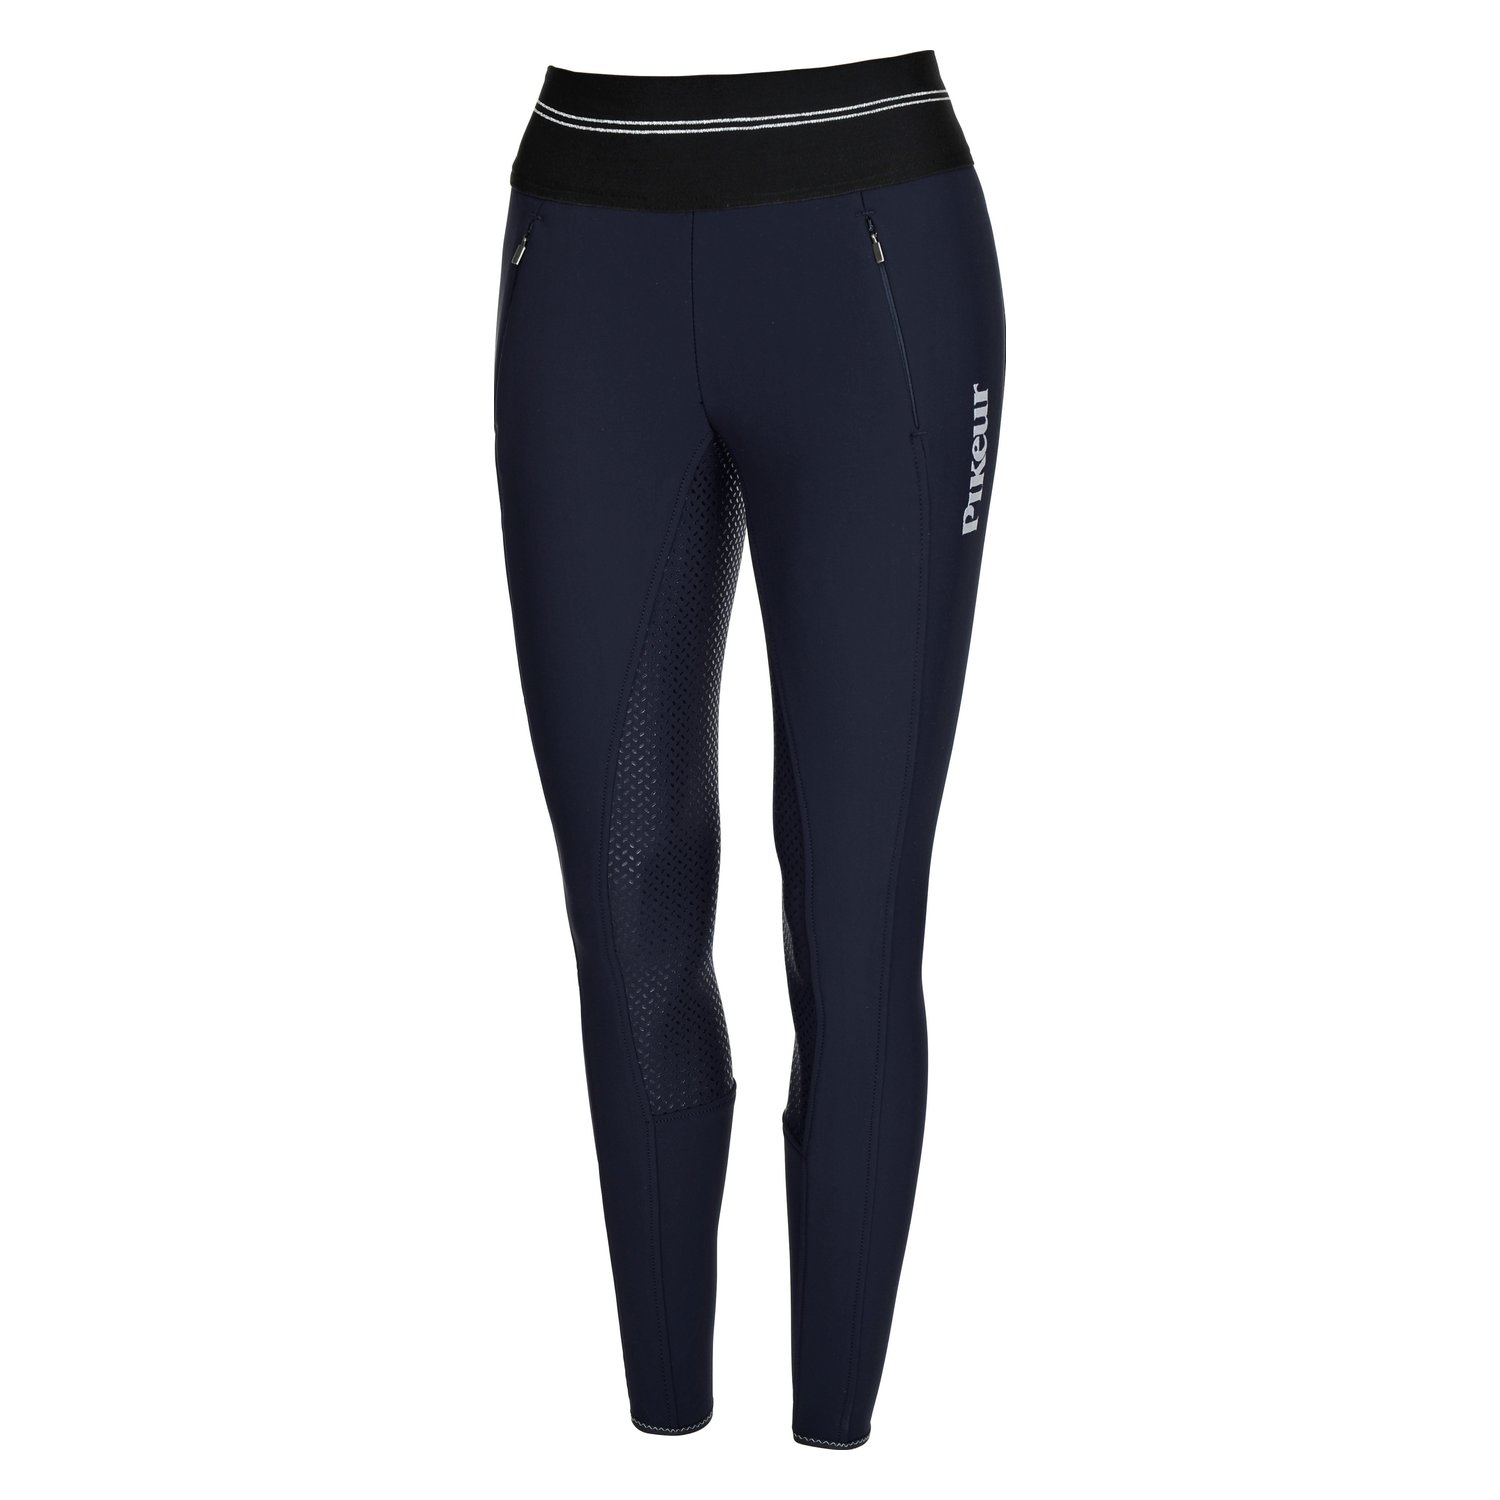 Бриджи Basis Gia Grip Athleisure,Pikeur